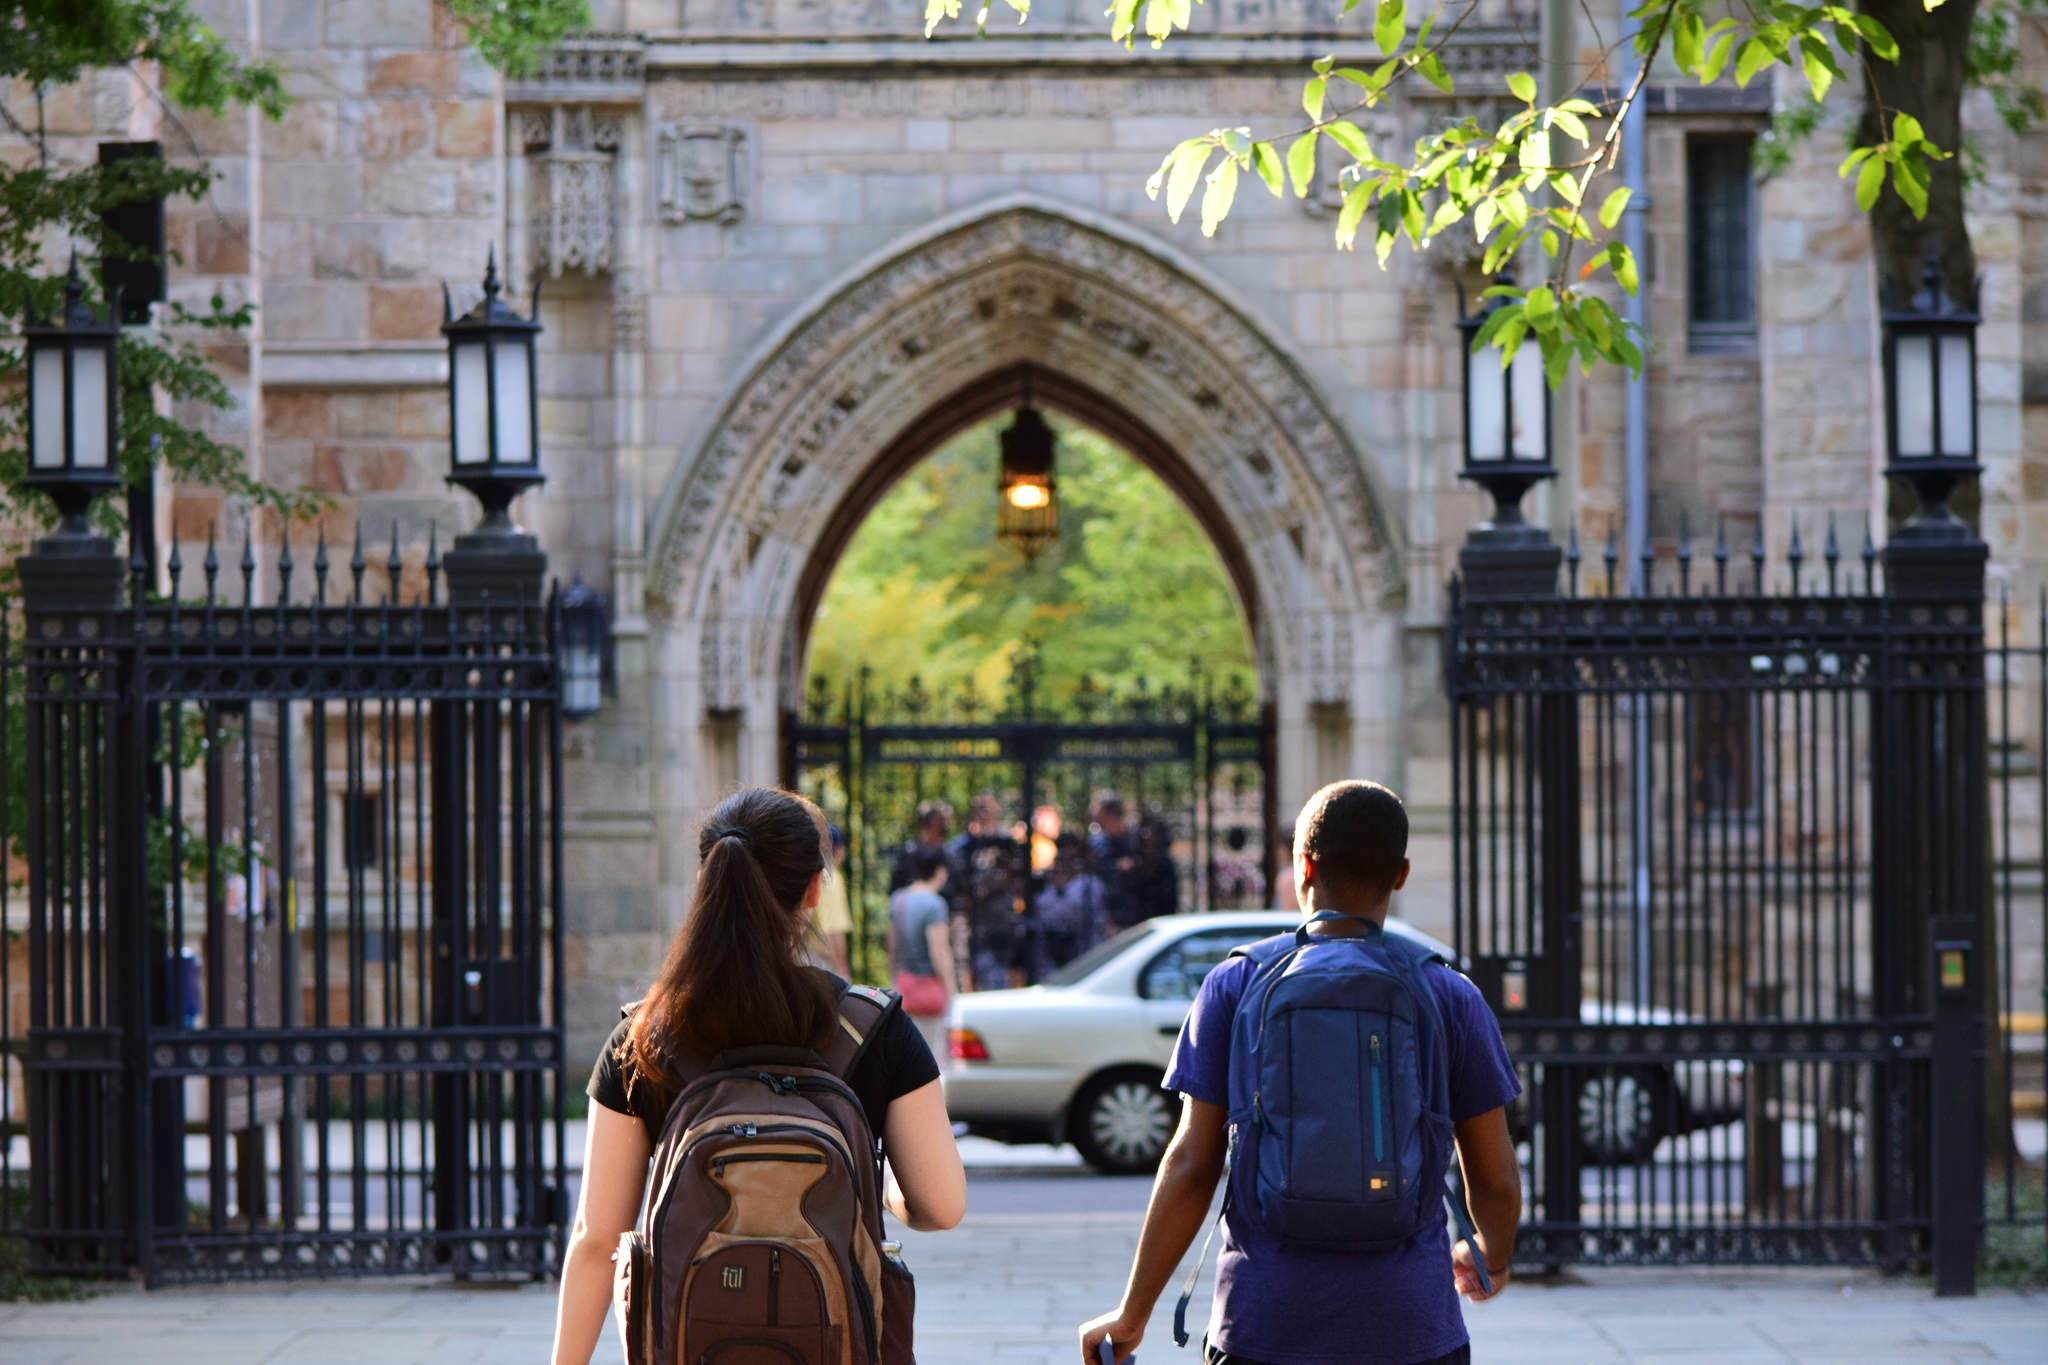 Universidad de Yale (Foto: Thomas Autumn / Flickr)